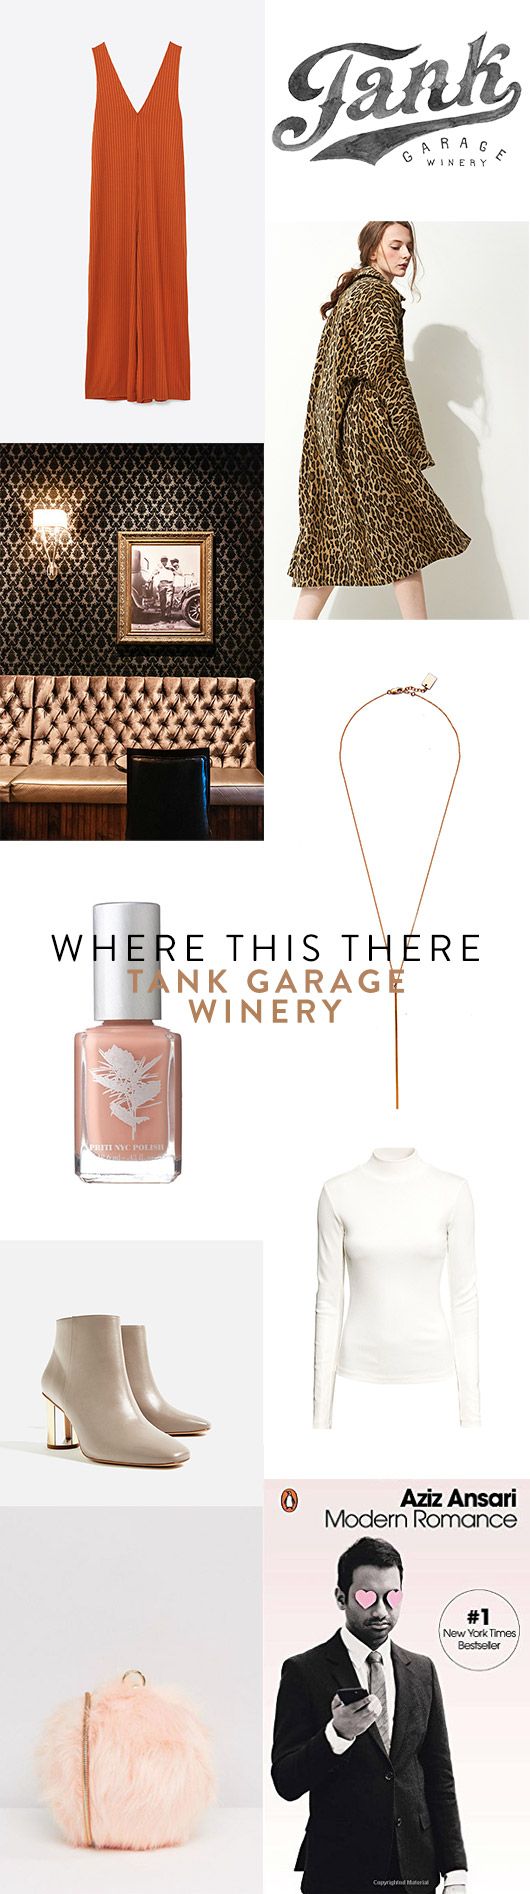 wear this there: tank garage winery. / sfgirlbybay